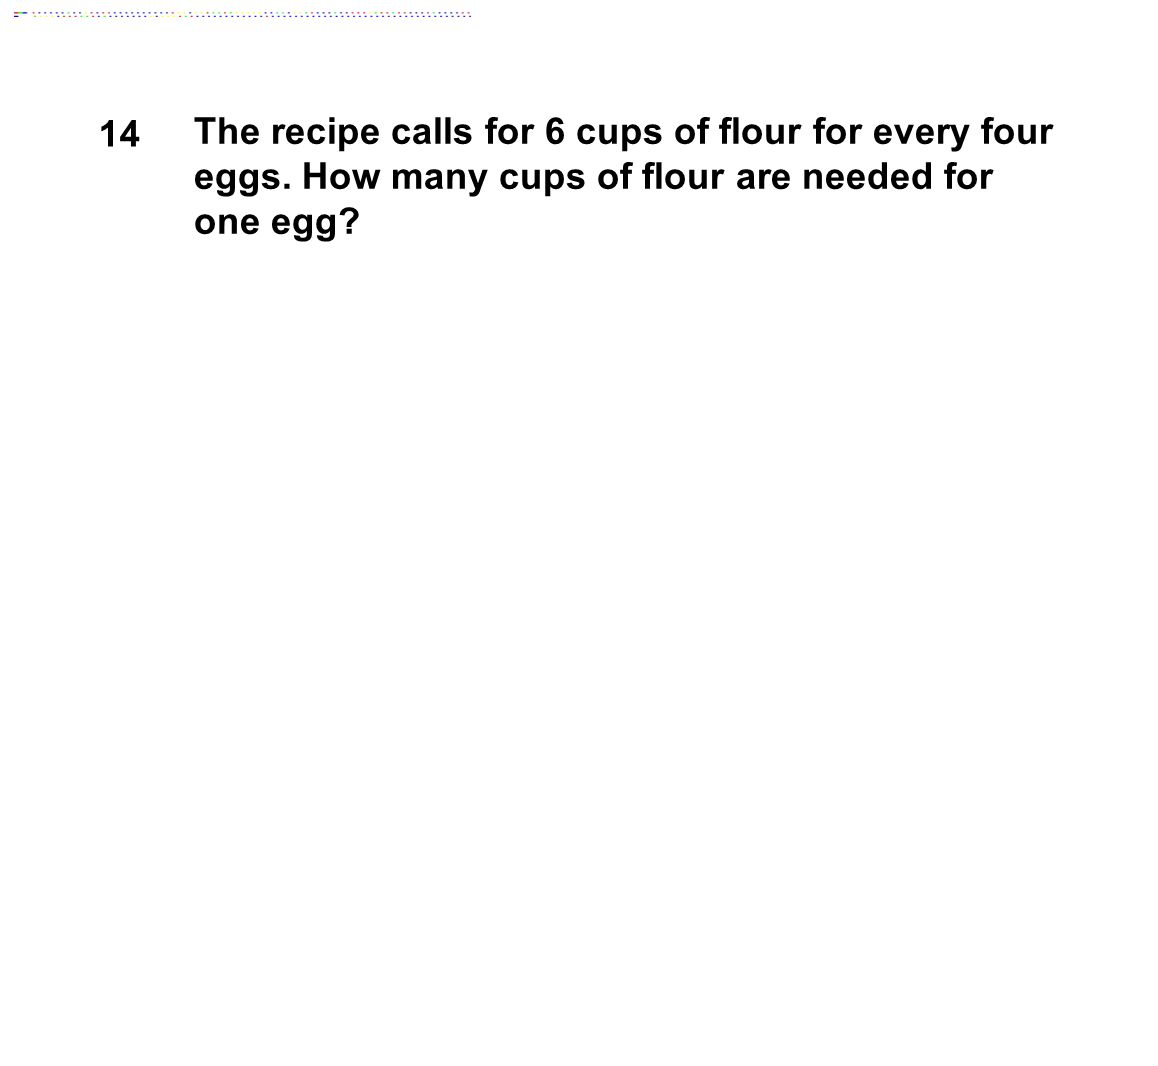 14 The recipe calls for 6 cups of flour for every four eggs. How many cups of flour are needed for one egg